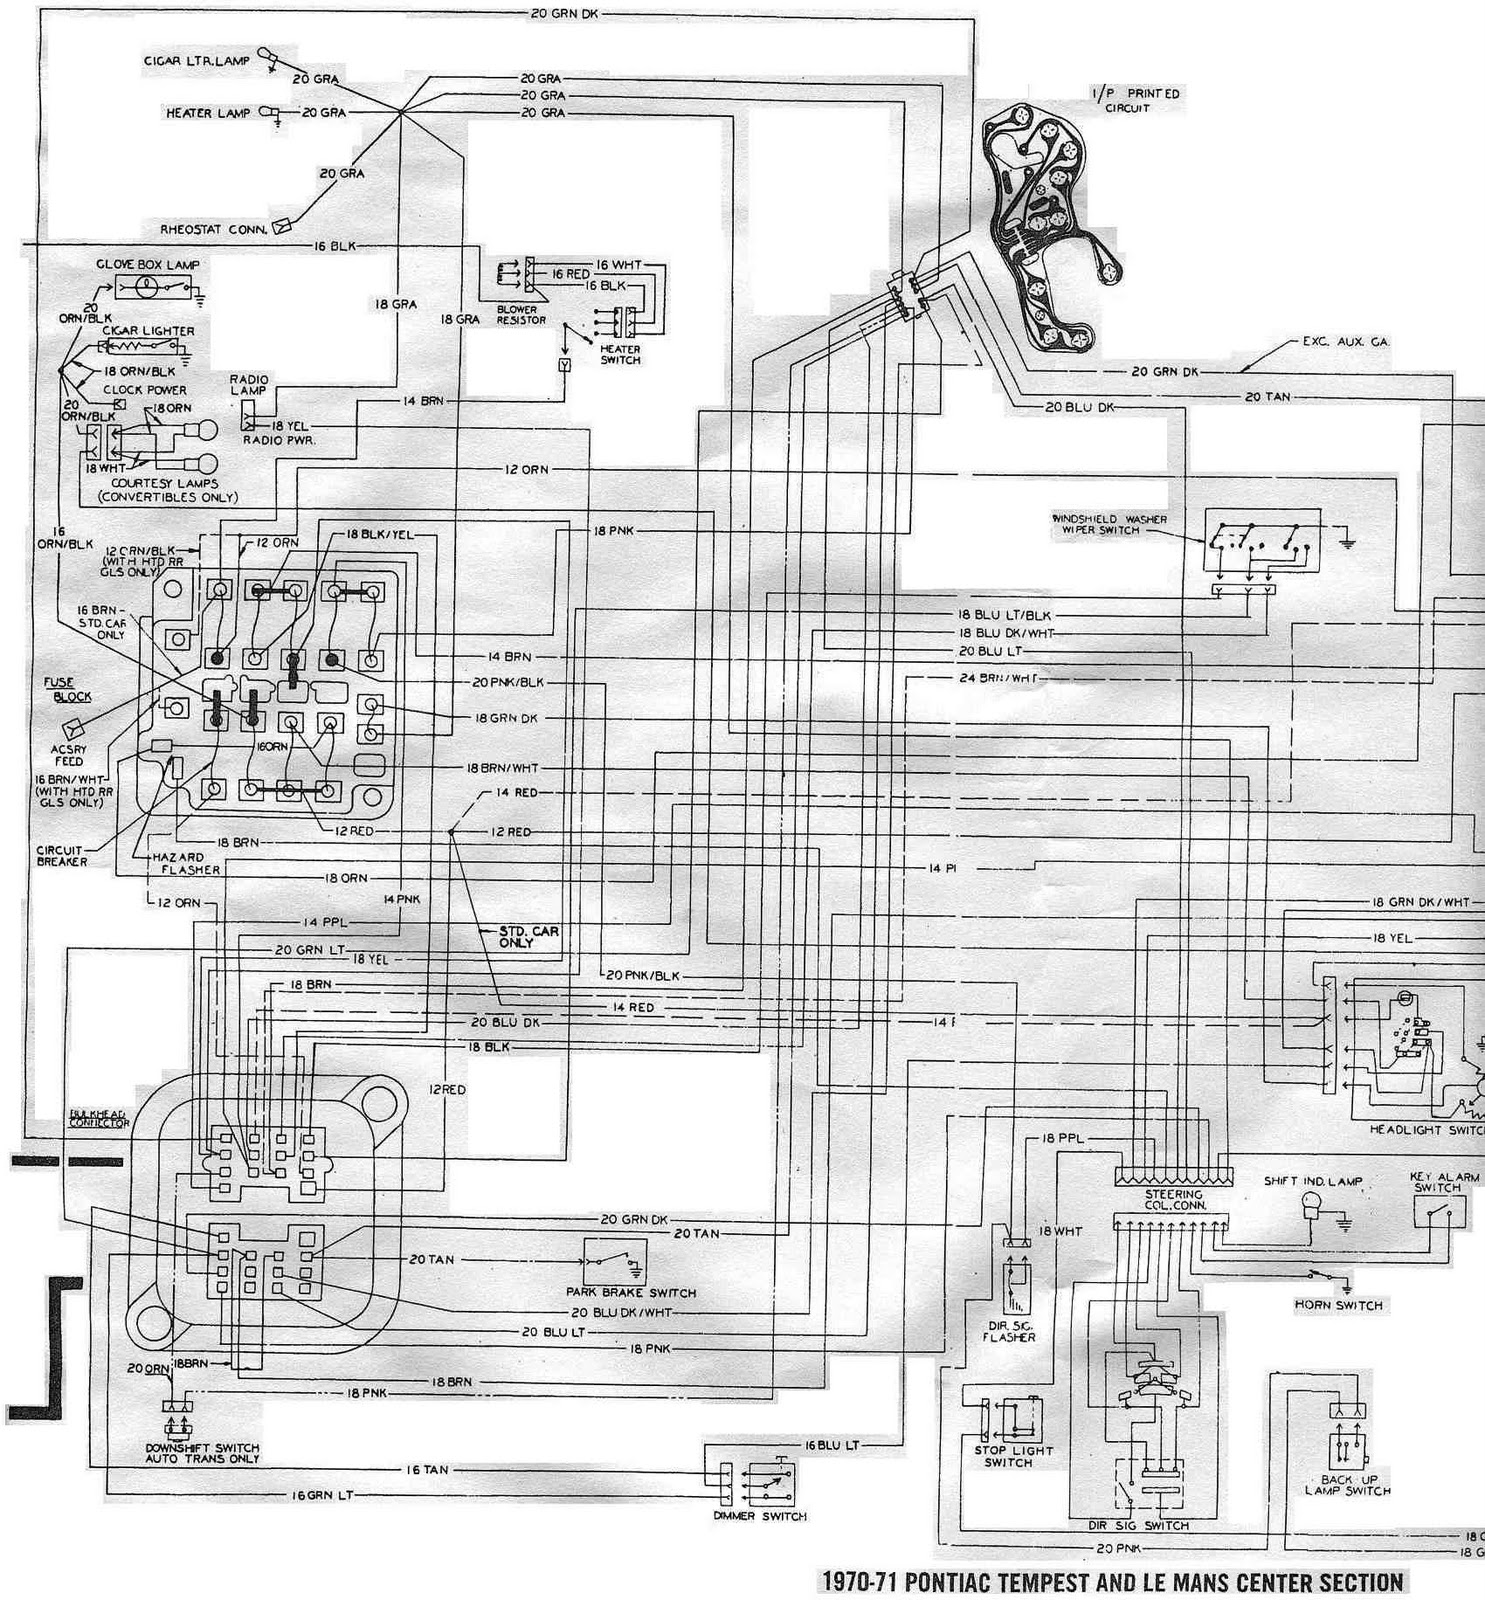 70 gto rally gauge alternator wiring diagram wiring library Wiring Diagram for 1970 GTO 1970 pontiac lemans wiring diagram books of wiring diagram \\u2022 1967 pontiac gto specs 1967